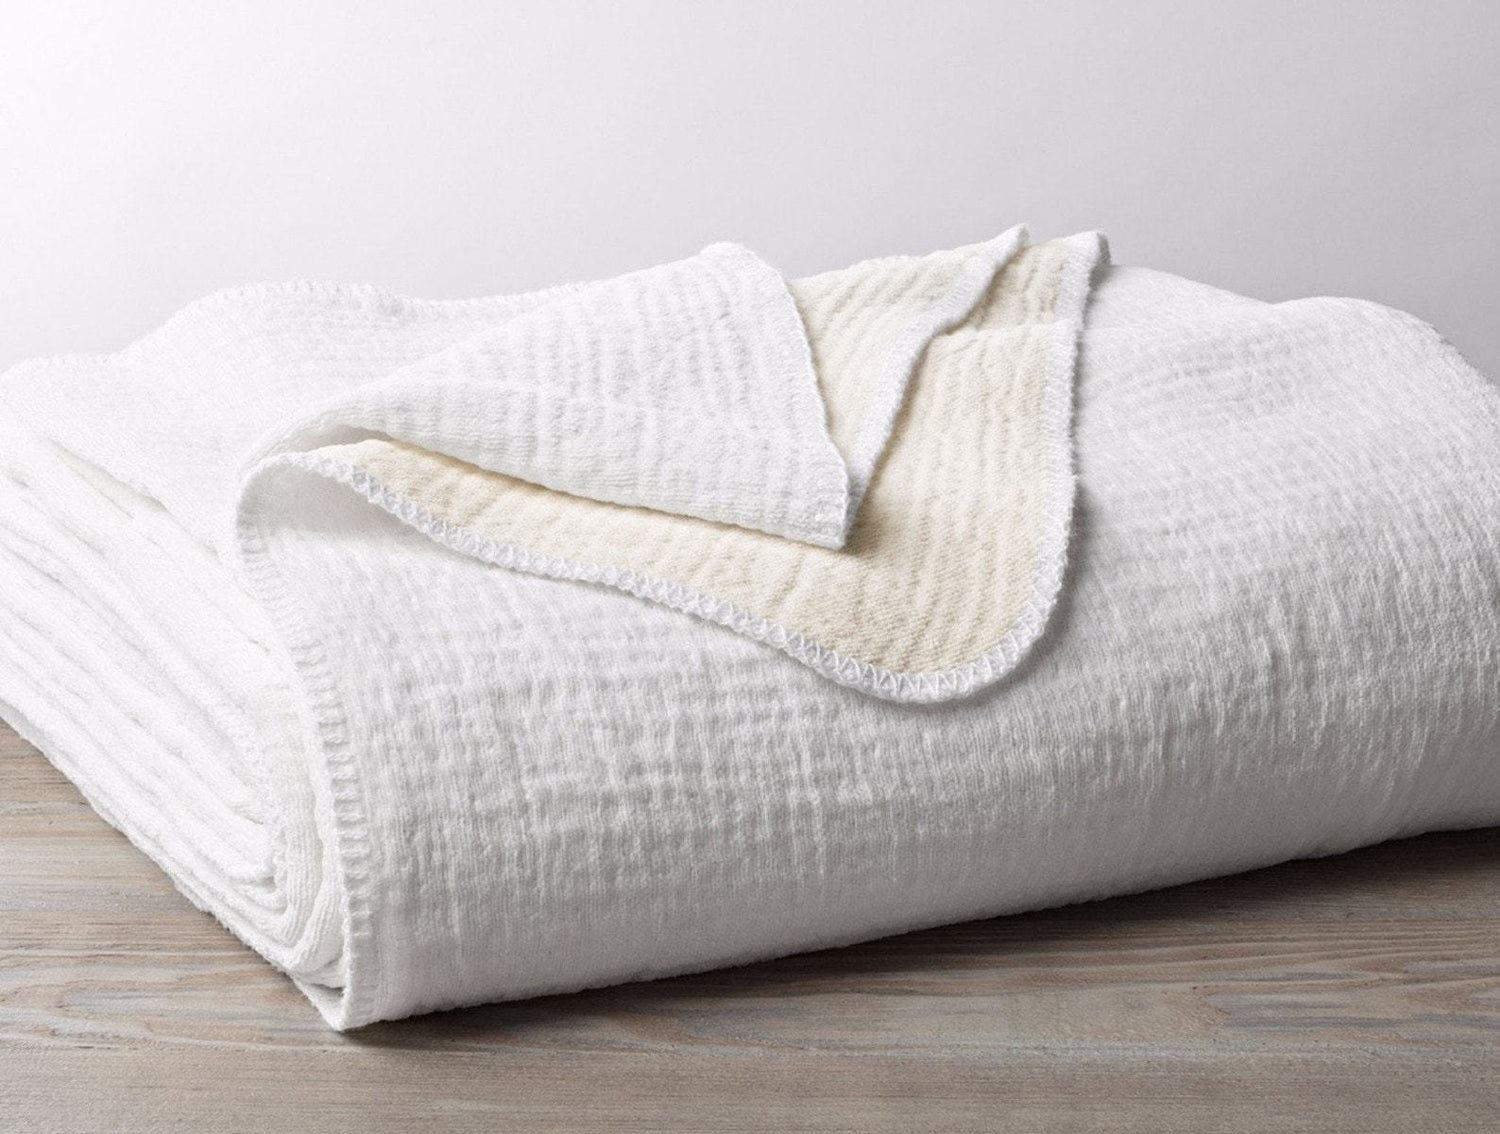 Coyuchi Cotton Organic Baby Blanket - Alpine White Bedding and Bath Coyuchi